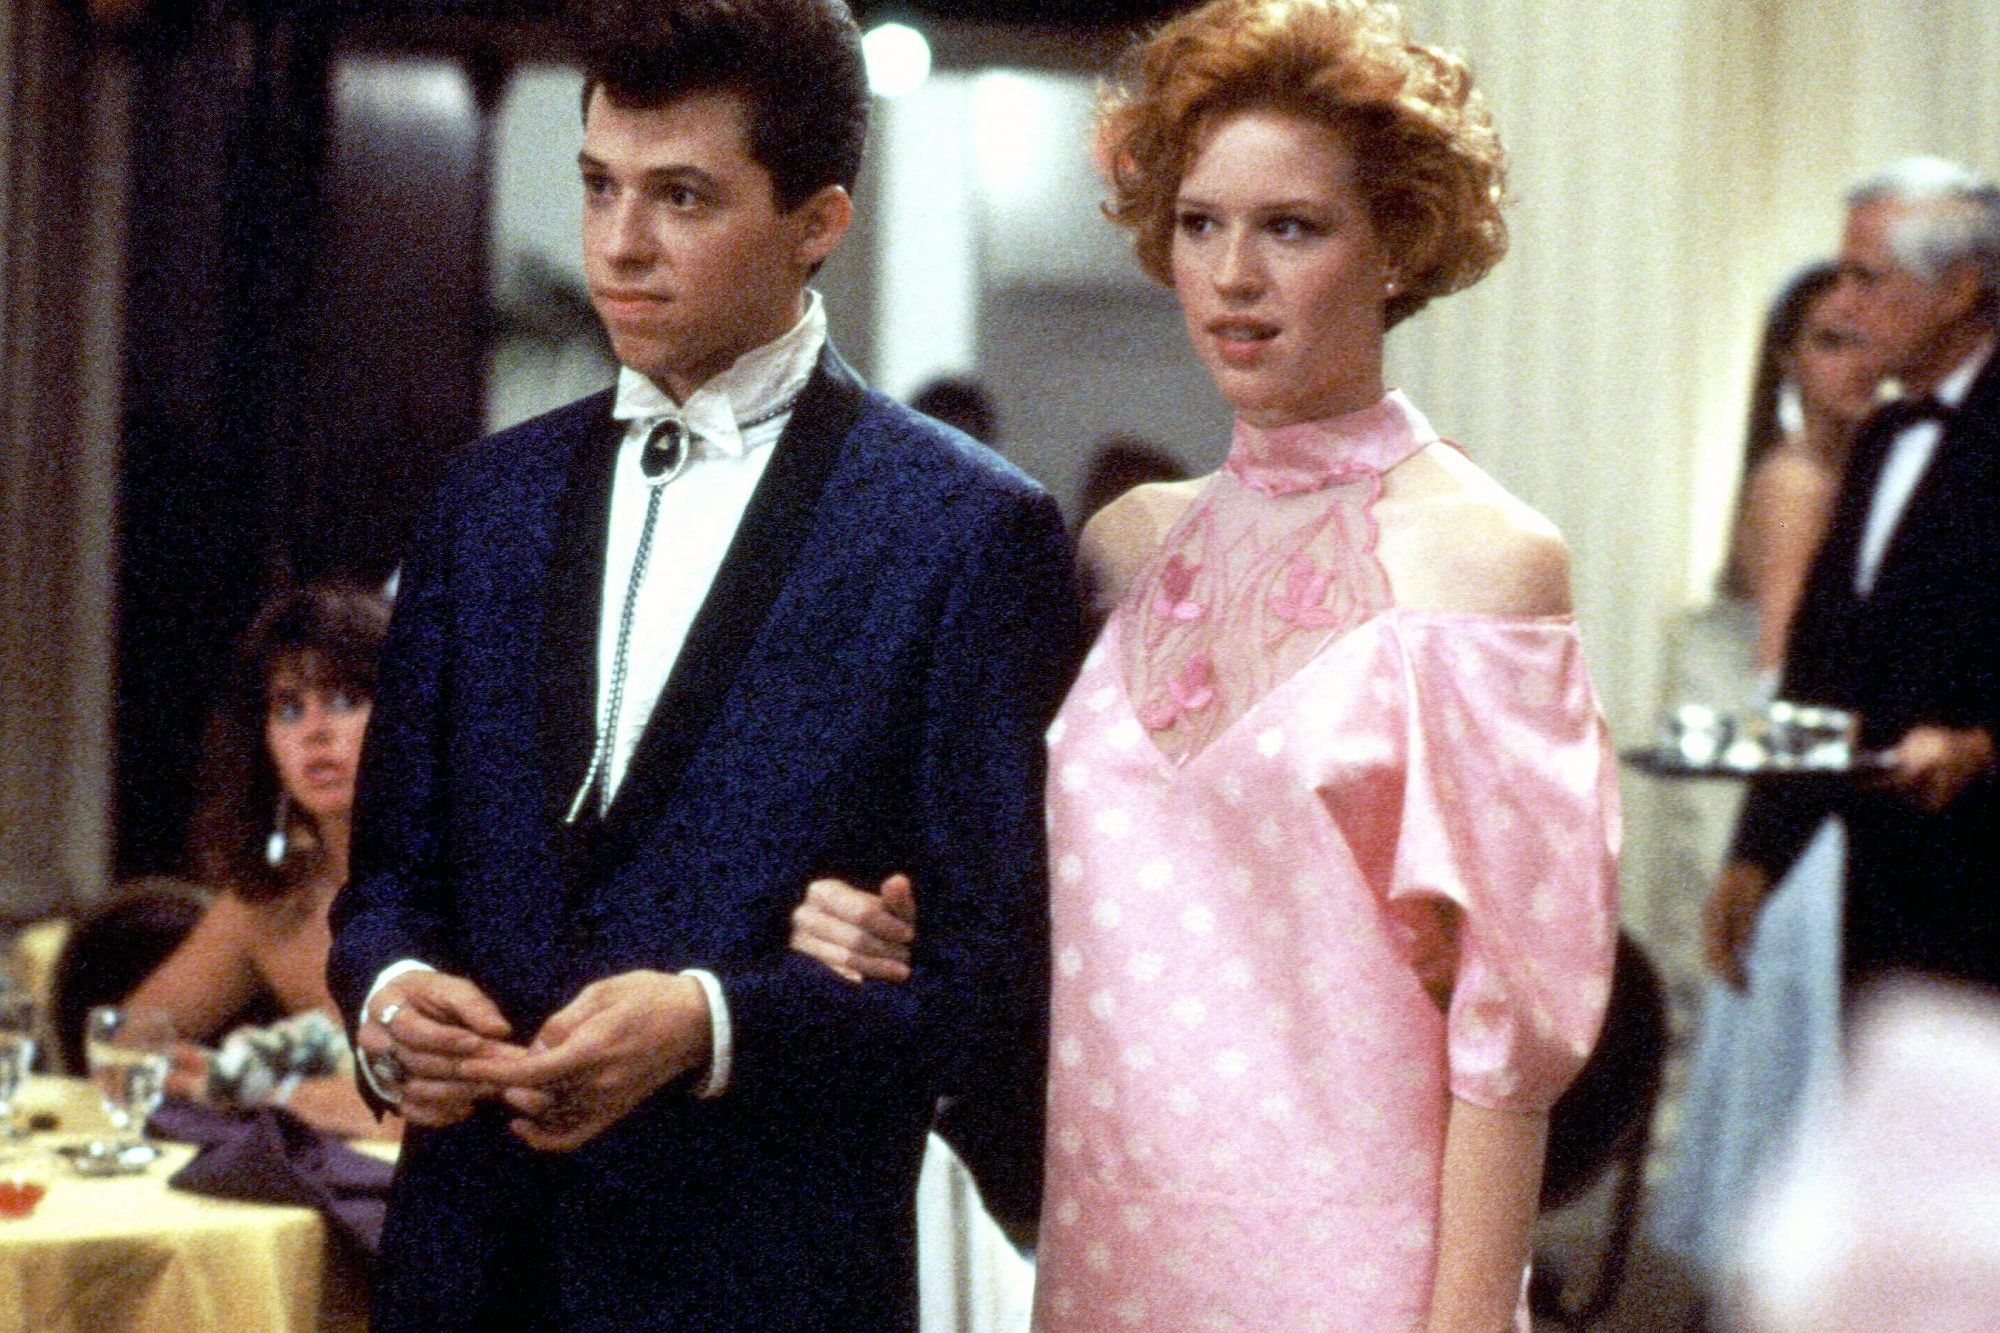 Andie (Molly Ringwald) in Pretty in Pink (1986)